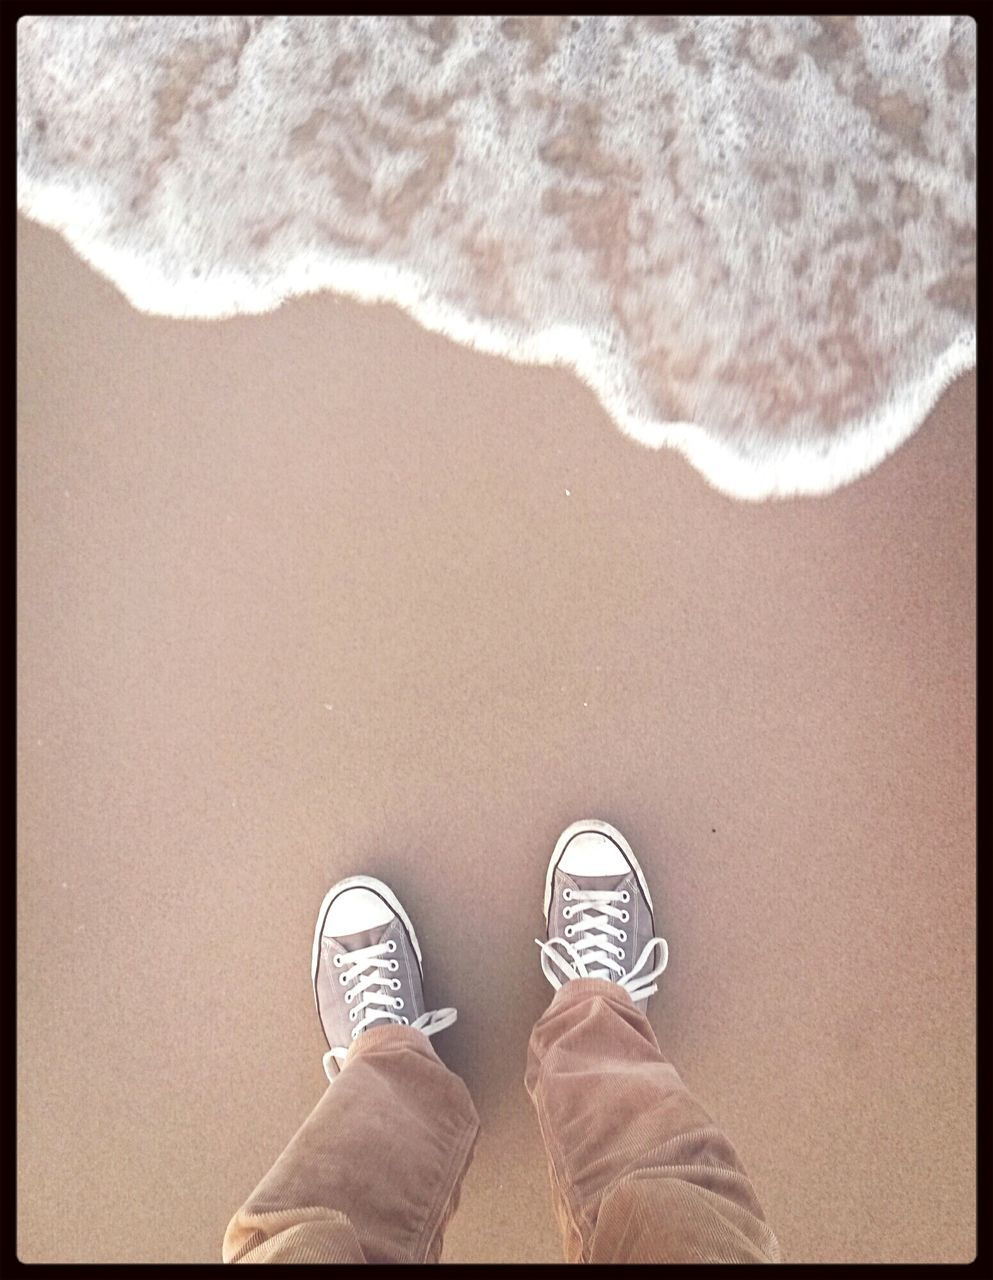 shoe, one person, low section, standing, beach, real people, human leg, sand, men, outdoors, day, human body part, water, sea, nature, one man only, people